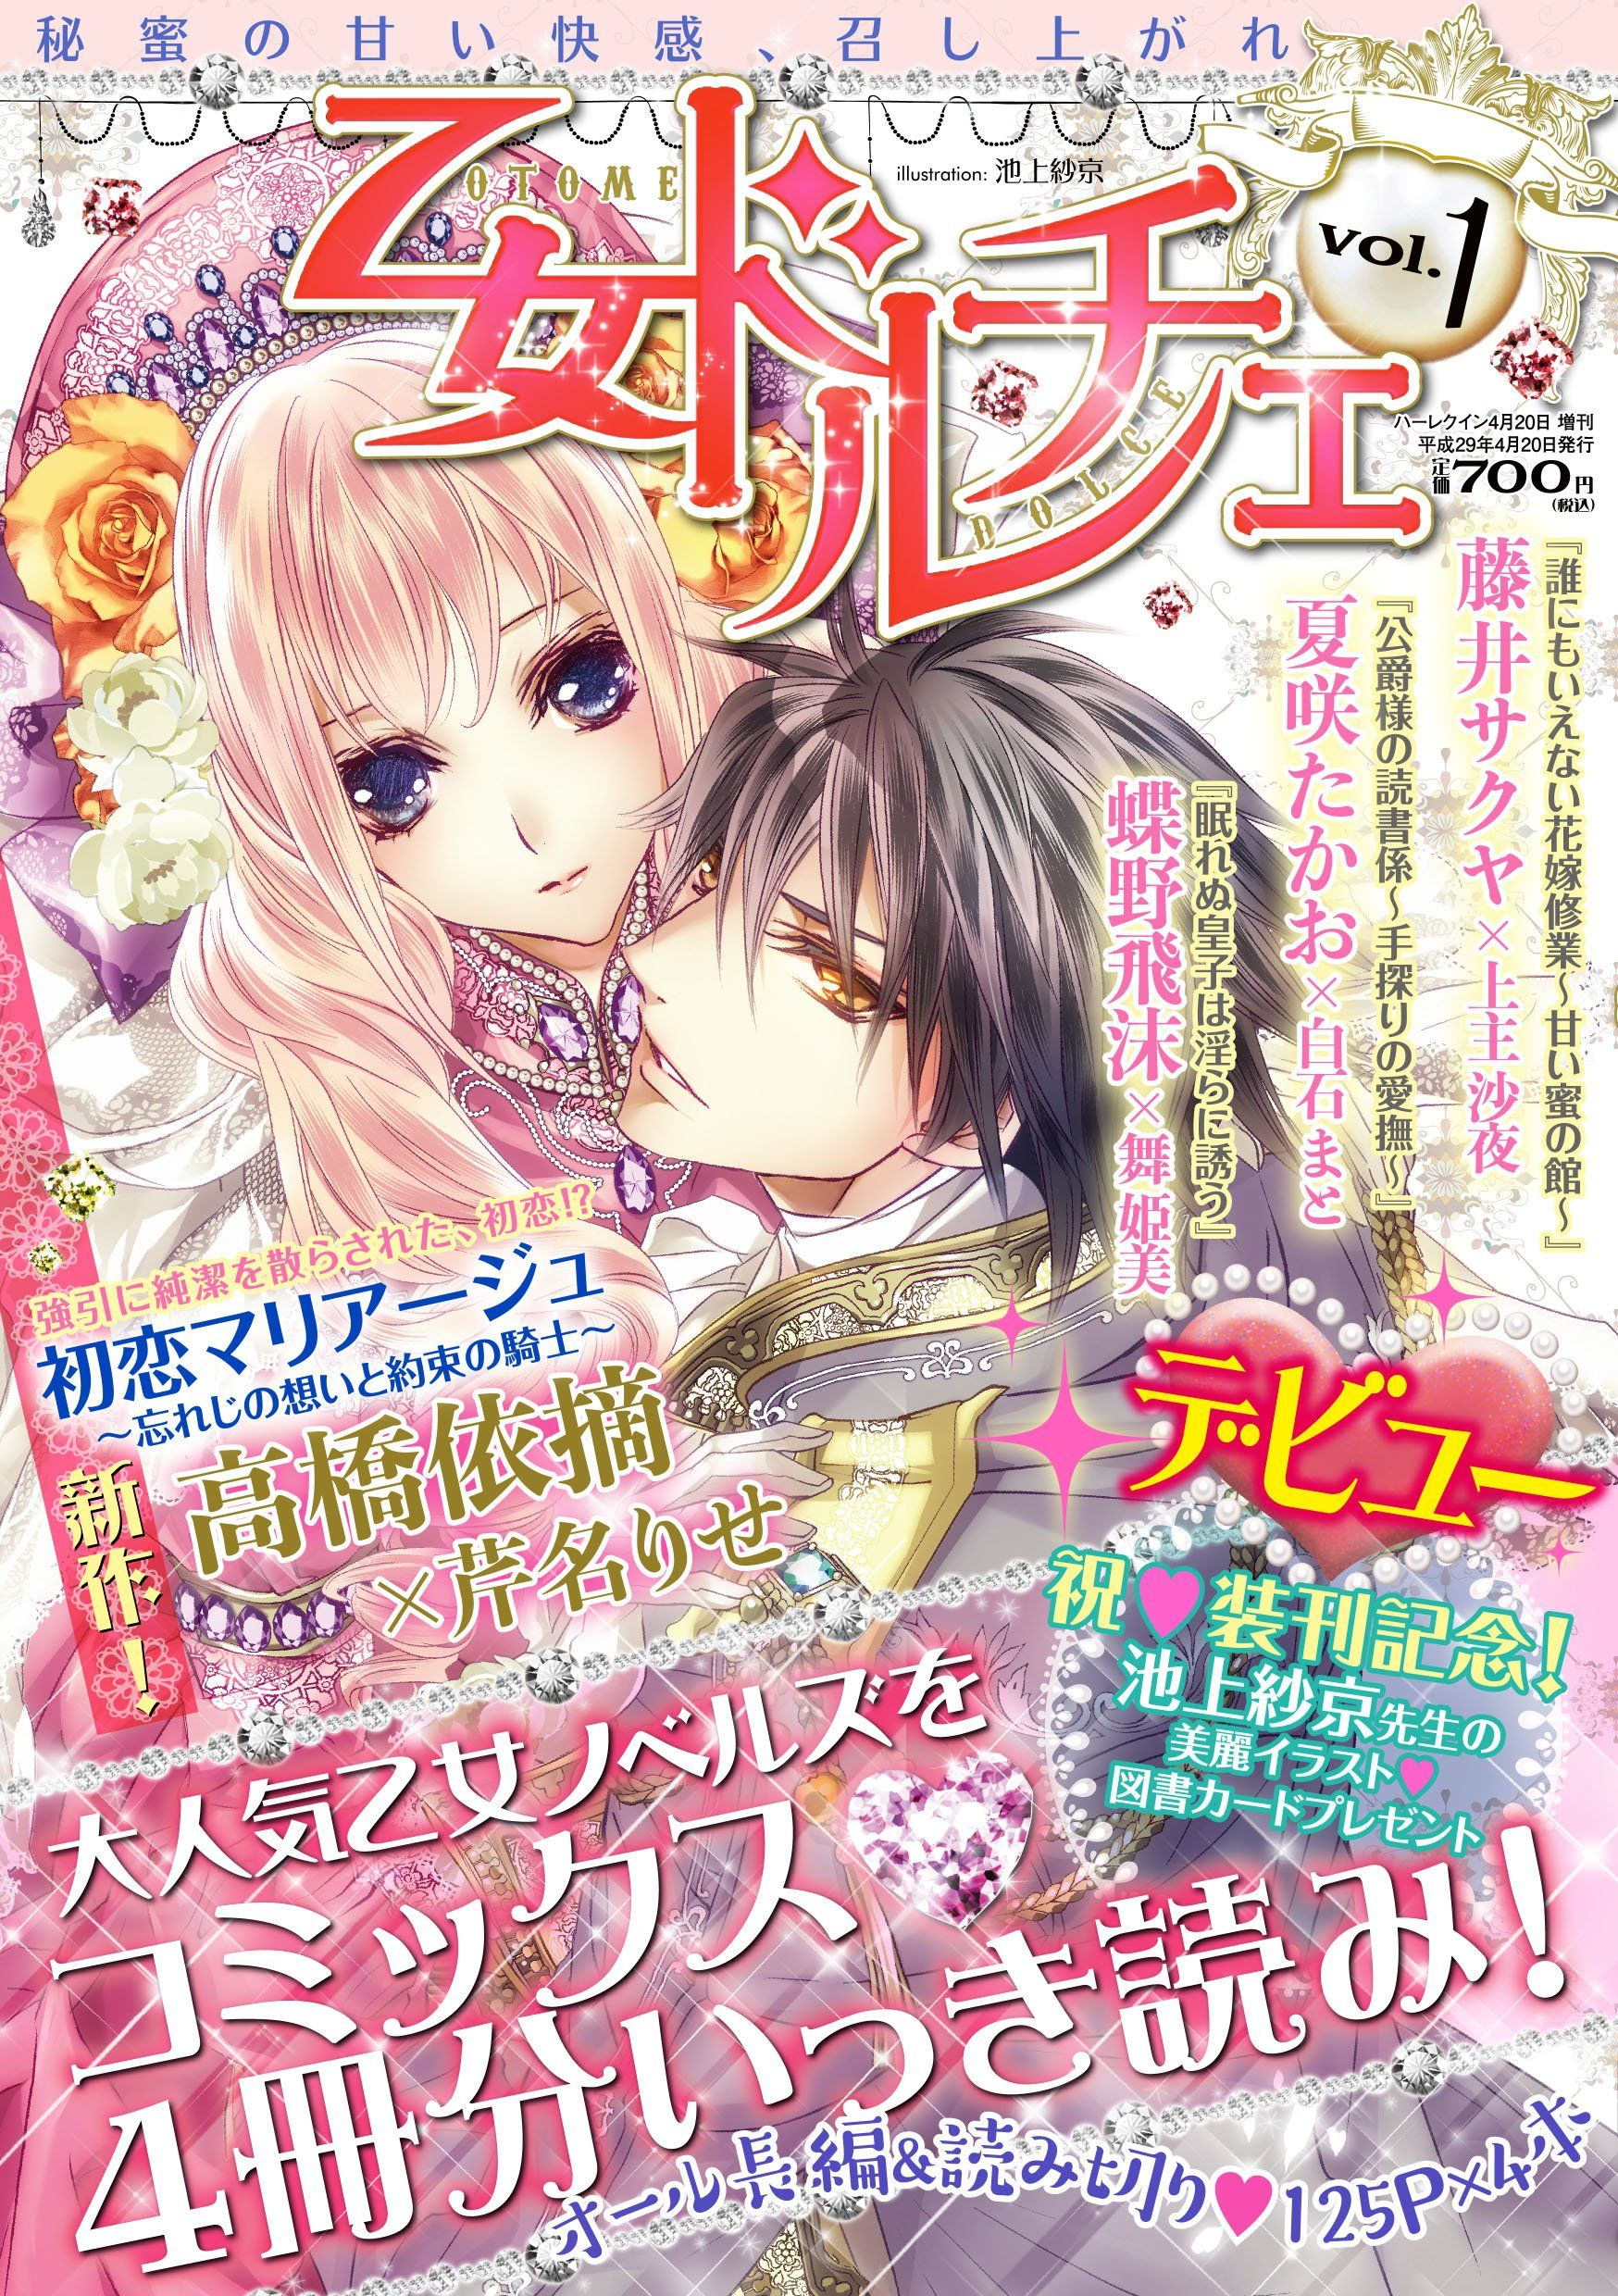 Mangas - Otome Dolce